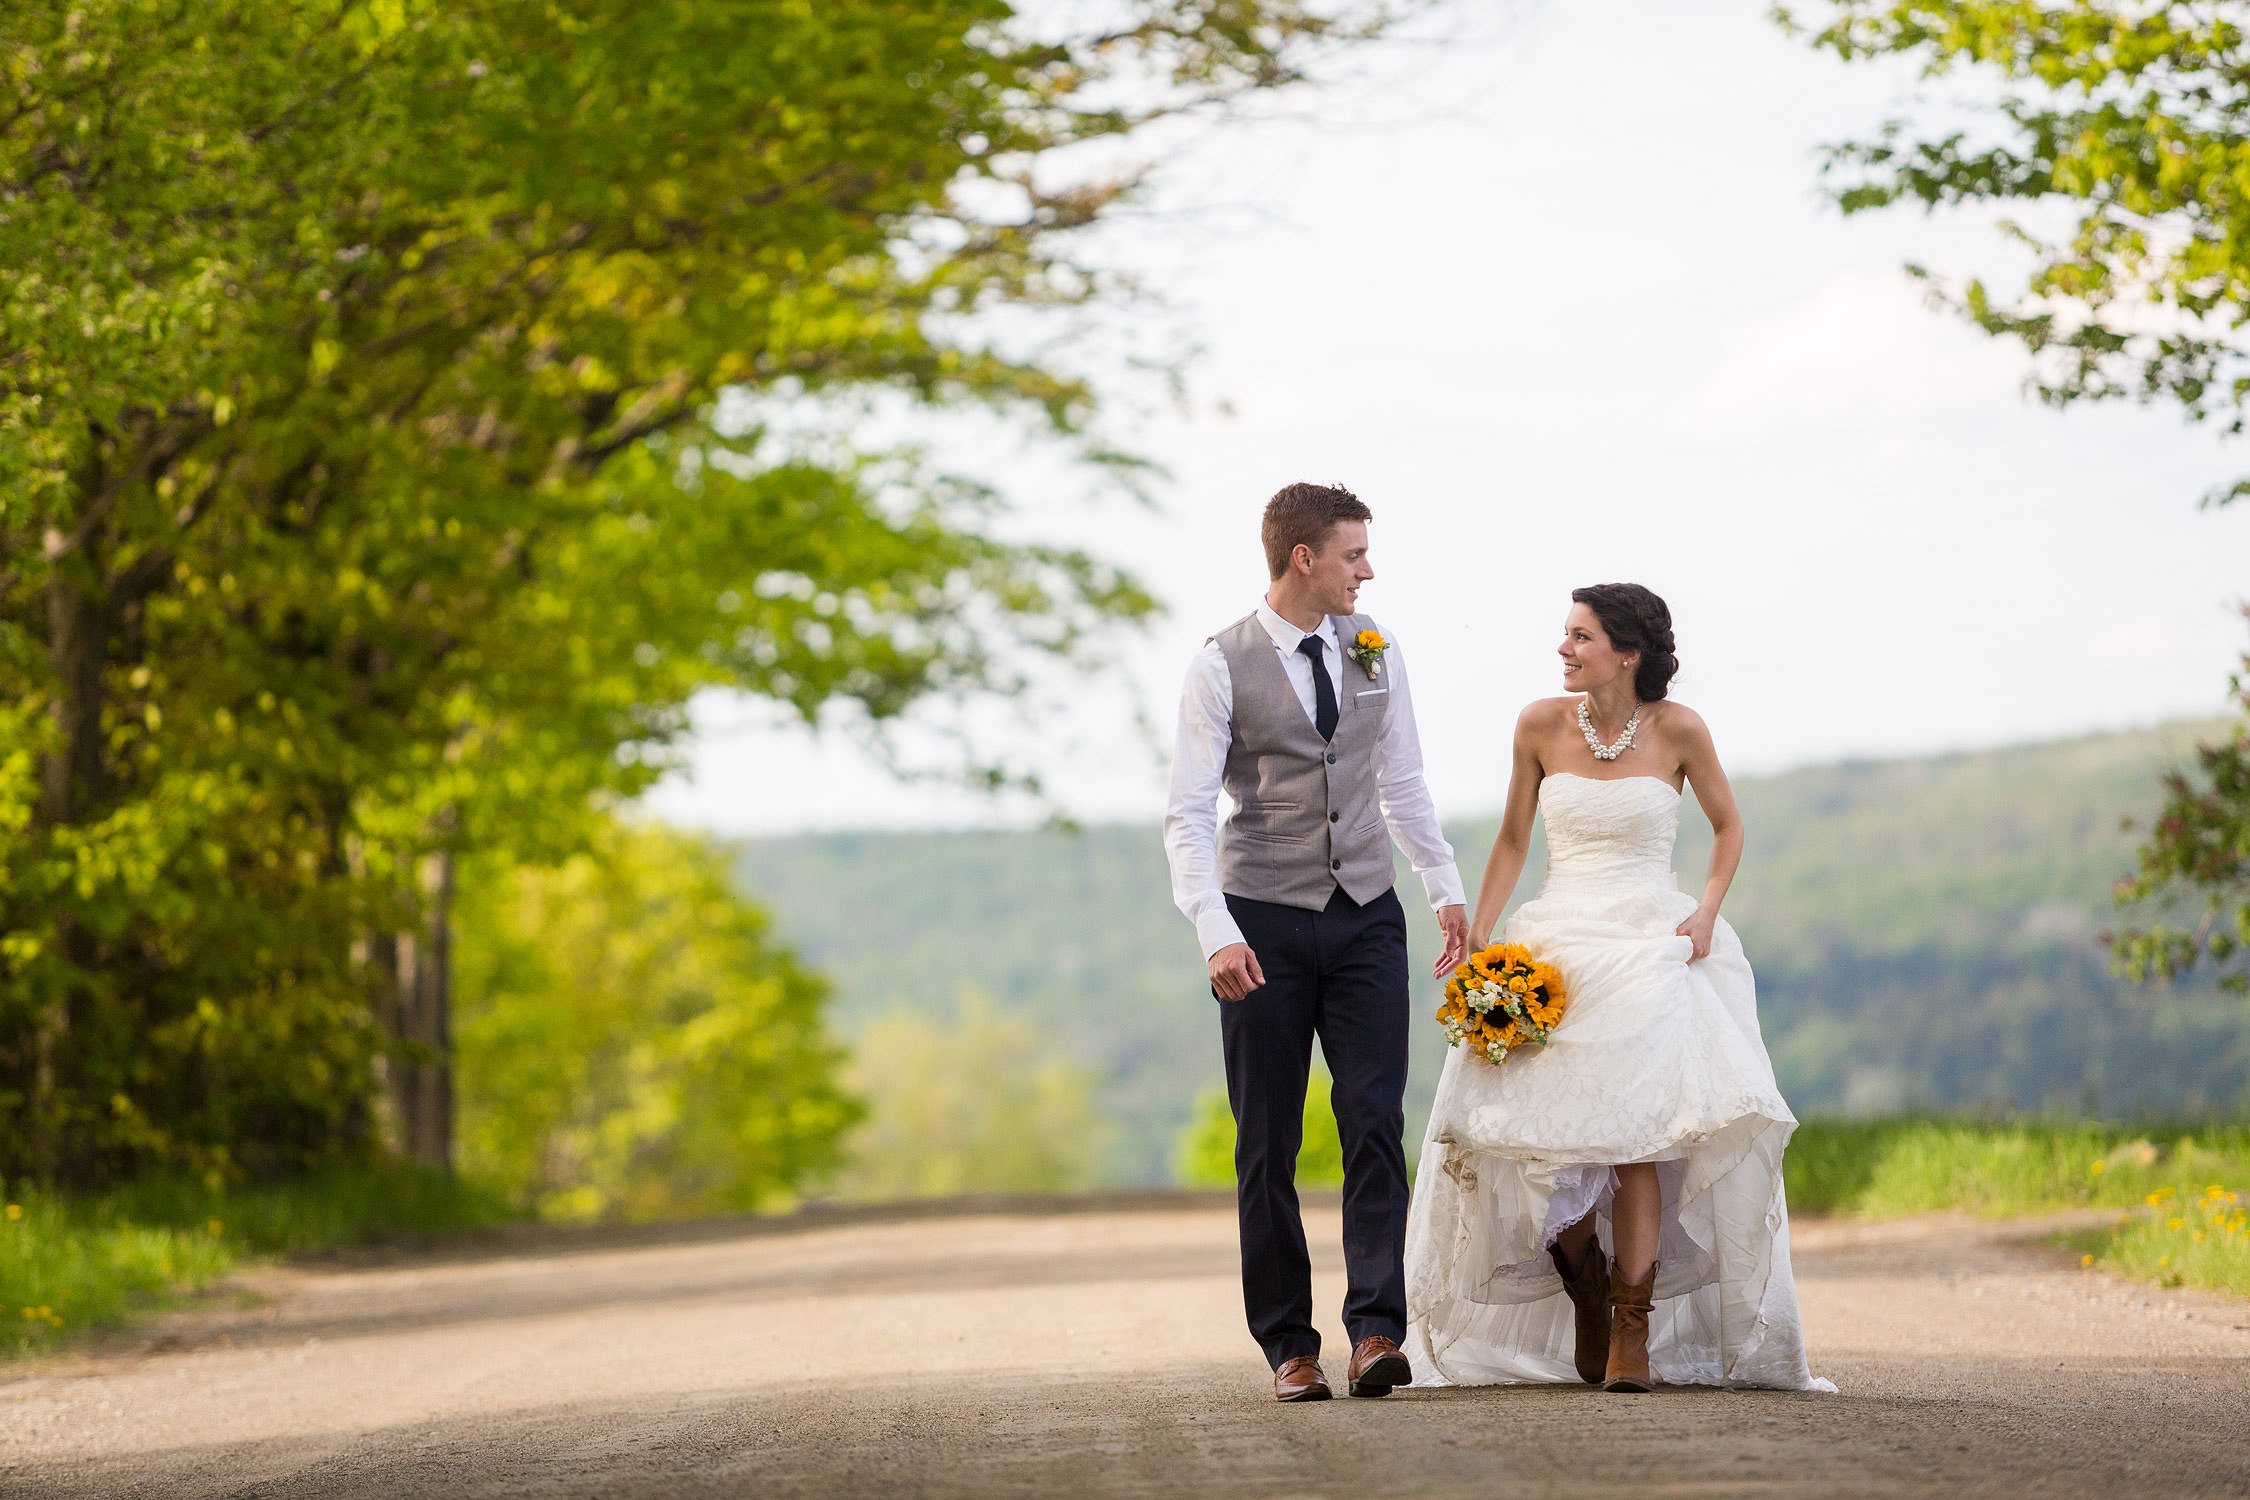 A bride lifts her dress revealing her cowboy boots while walking down a dirt road with the groom in Newport Vermont